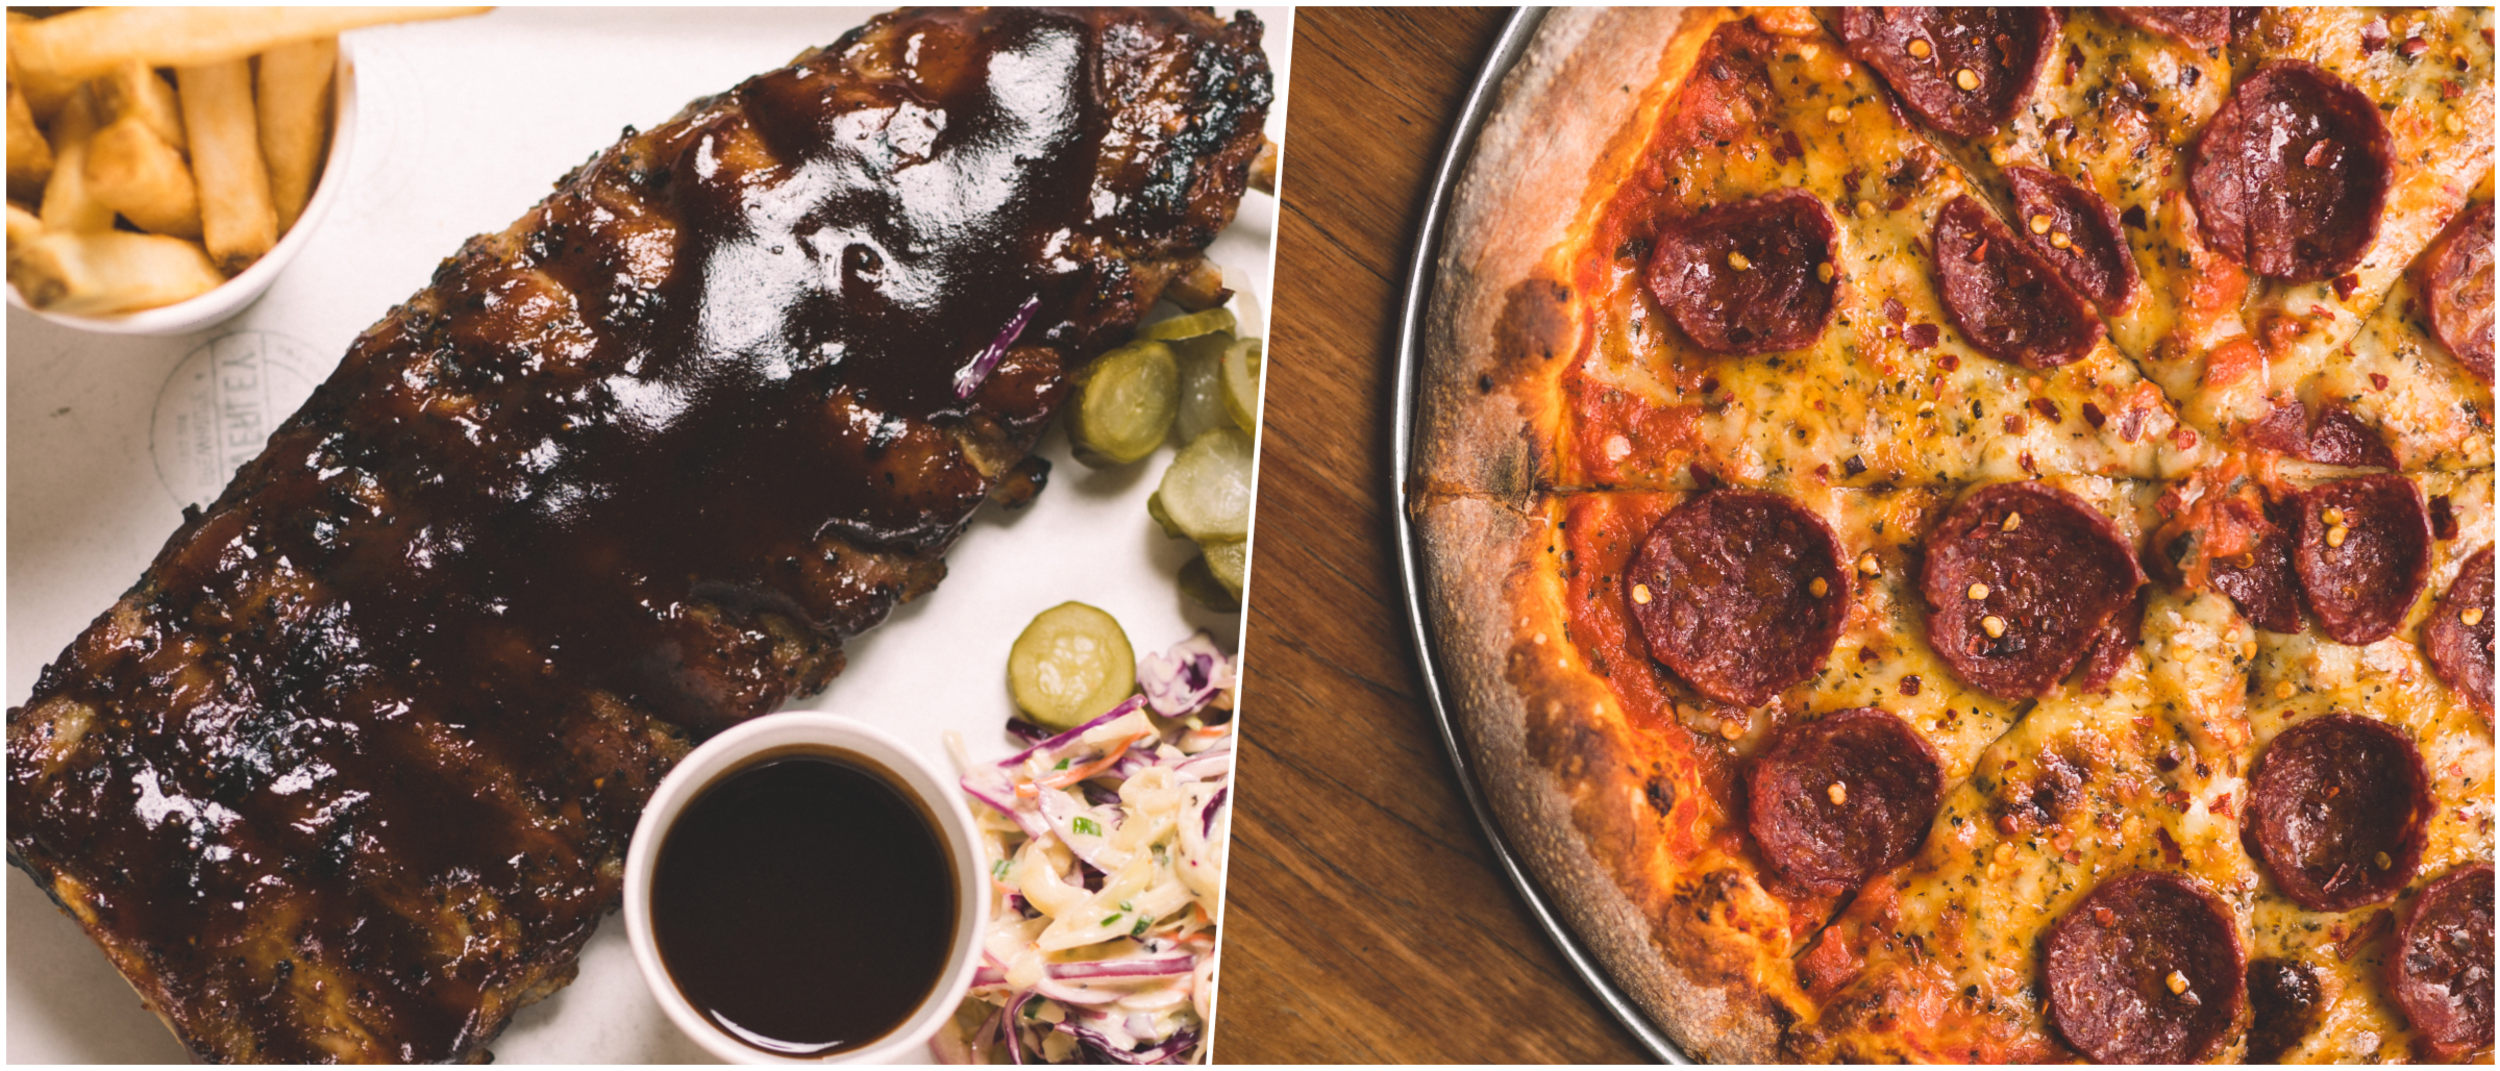 The Waverley Brewhouse: ribs and pizza's